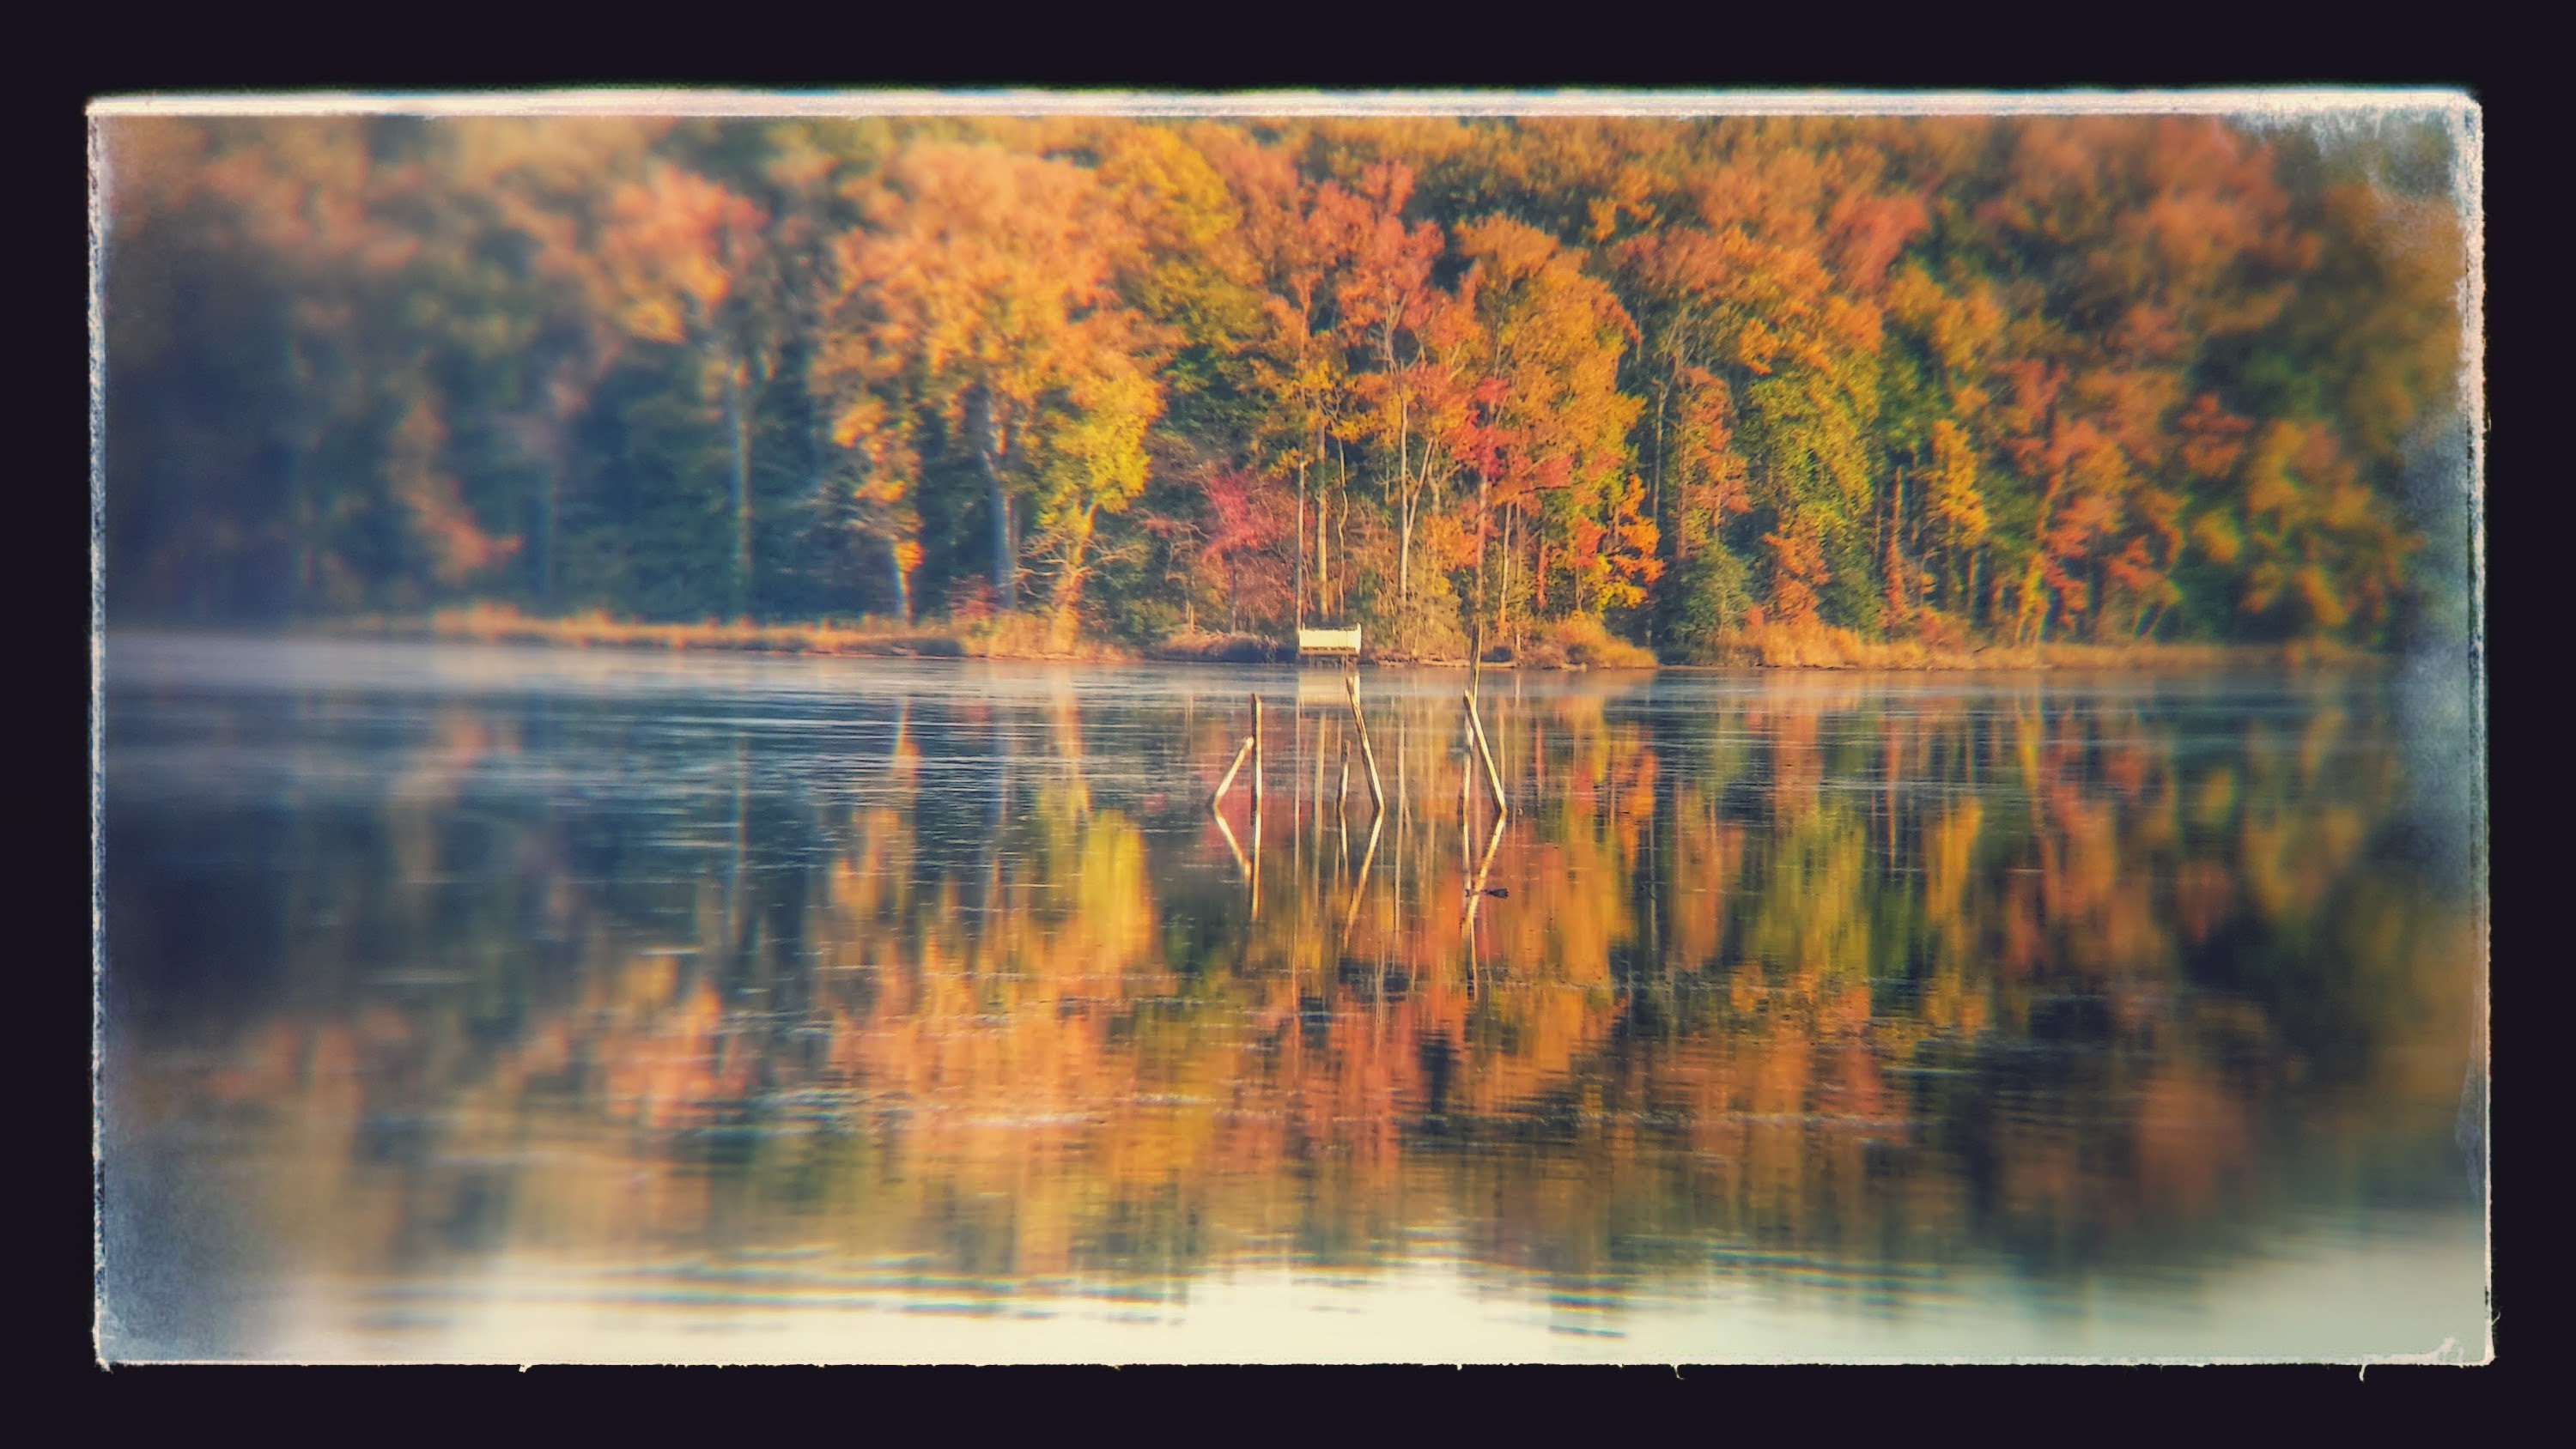 20151022_171007_HDR-EFFECTS